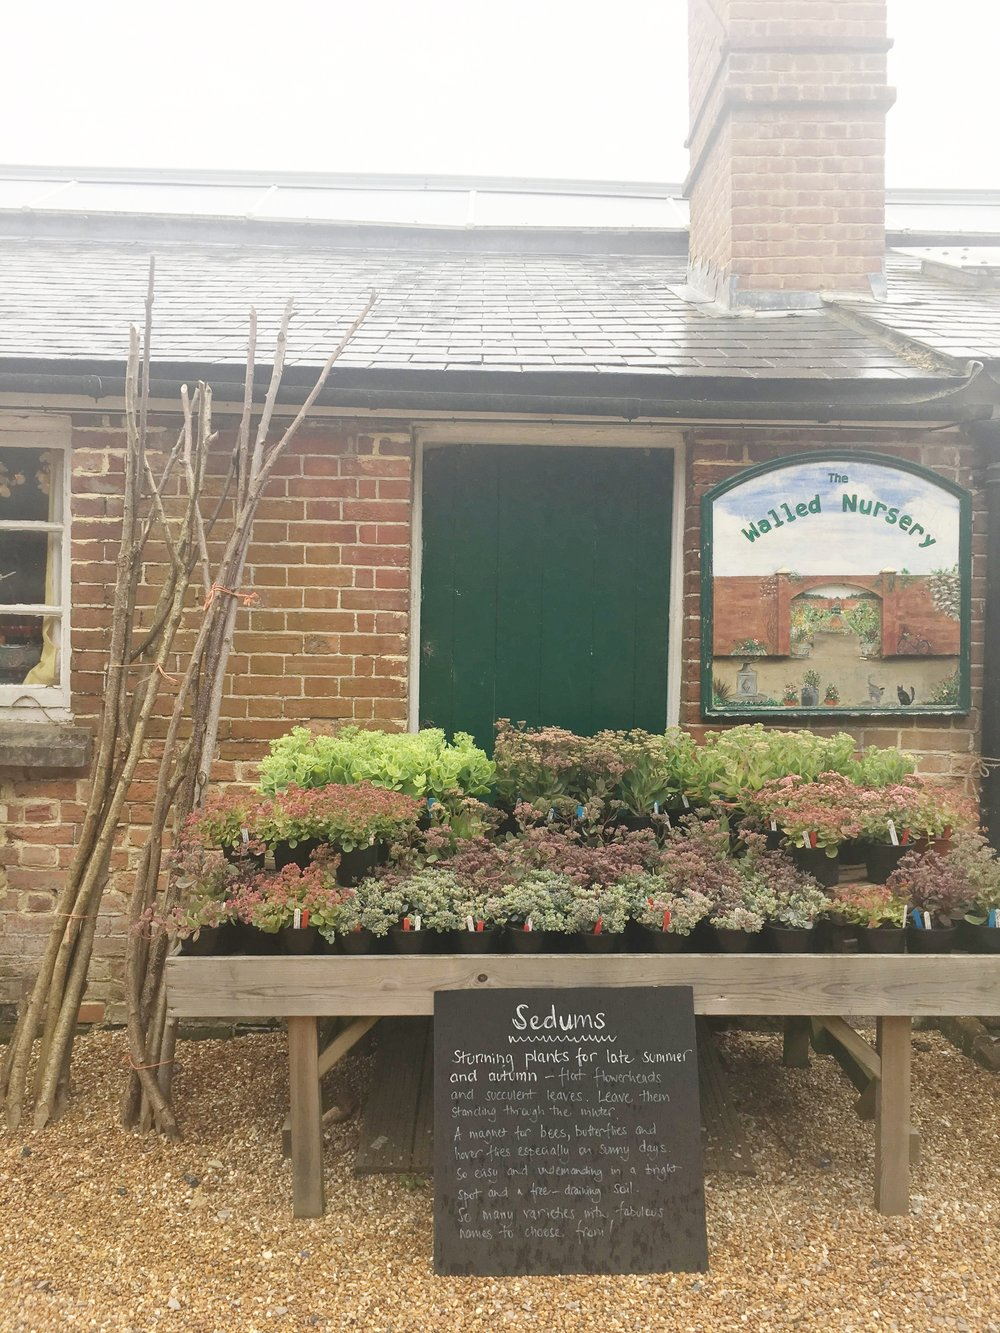 The  Walled Nursery  near Hawkhurst in Kent is definitely worth a visit if you are ever nearby. It is beautiful to potter around and also offers yummy lunches using local delicacies.